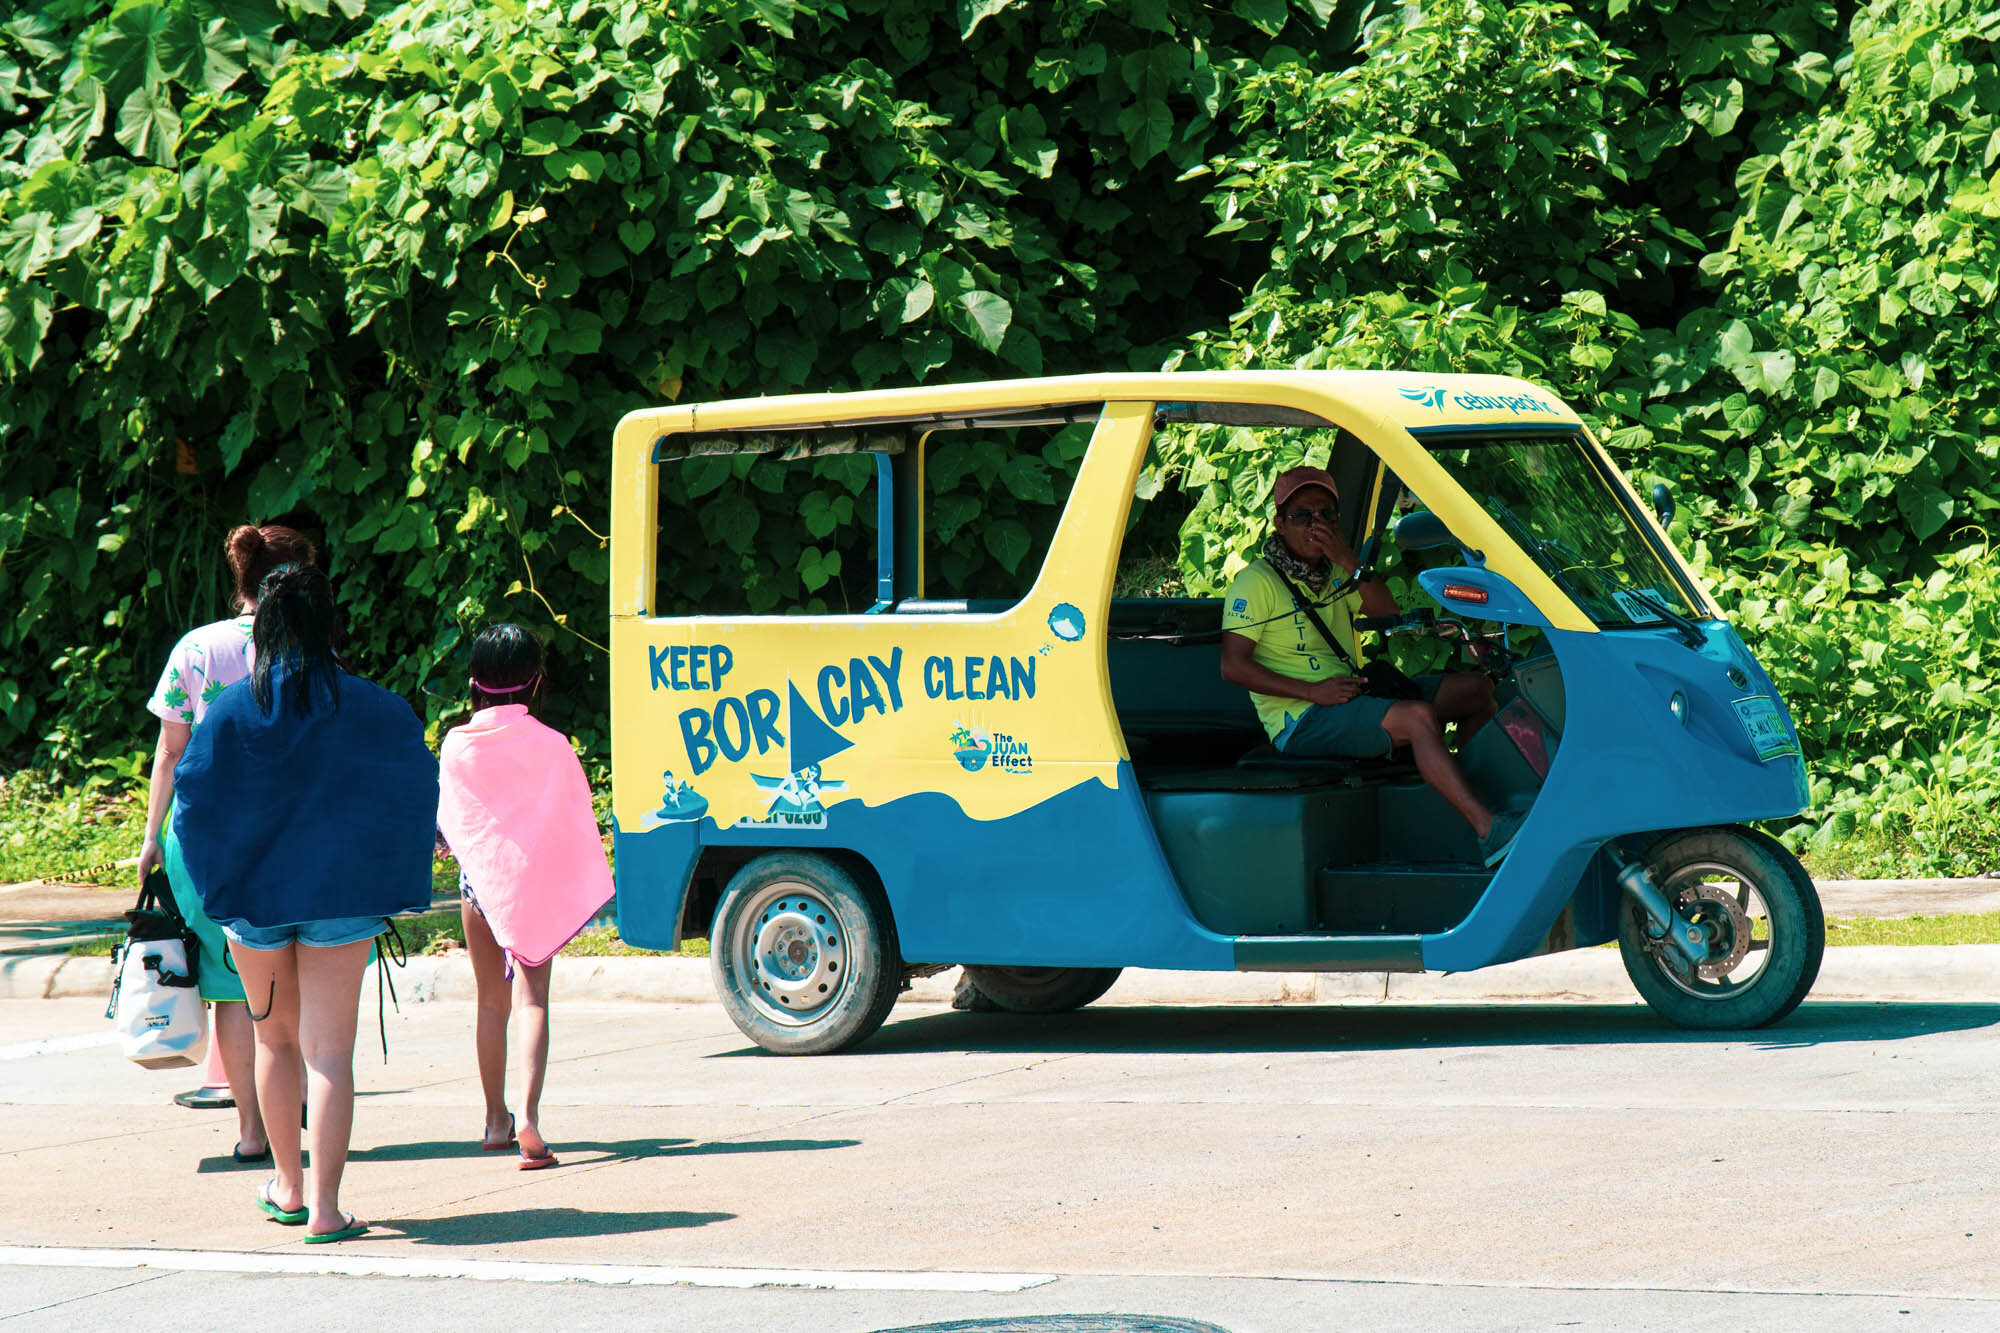 2019, Boracay Newcoast. We took this little cutie for our island tour and although it costs a wee bit more than a regular tricycle (Php 600/hour), we decided to go for this option since it wasn't as bouncy as the other one, it reduces carbon dioxide emissions, and it minimizes air pollution.